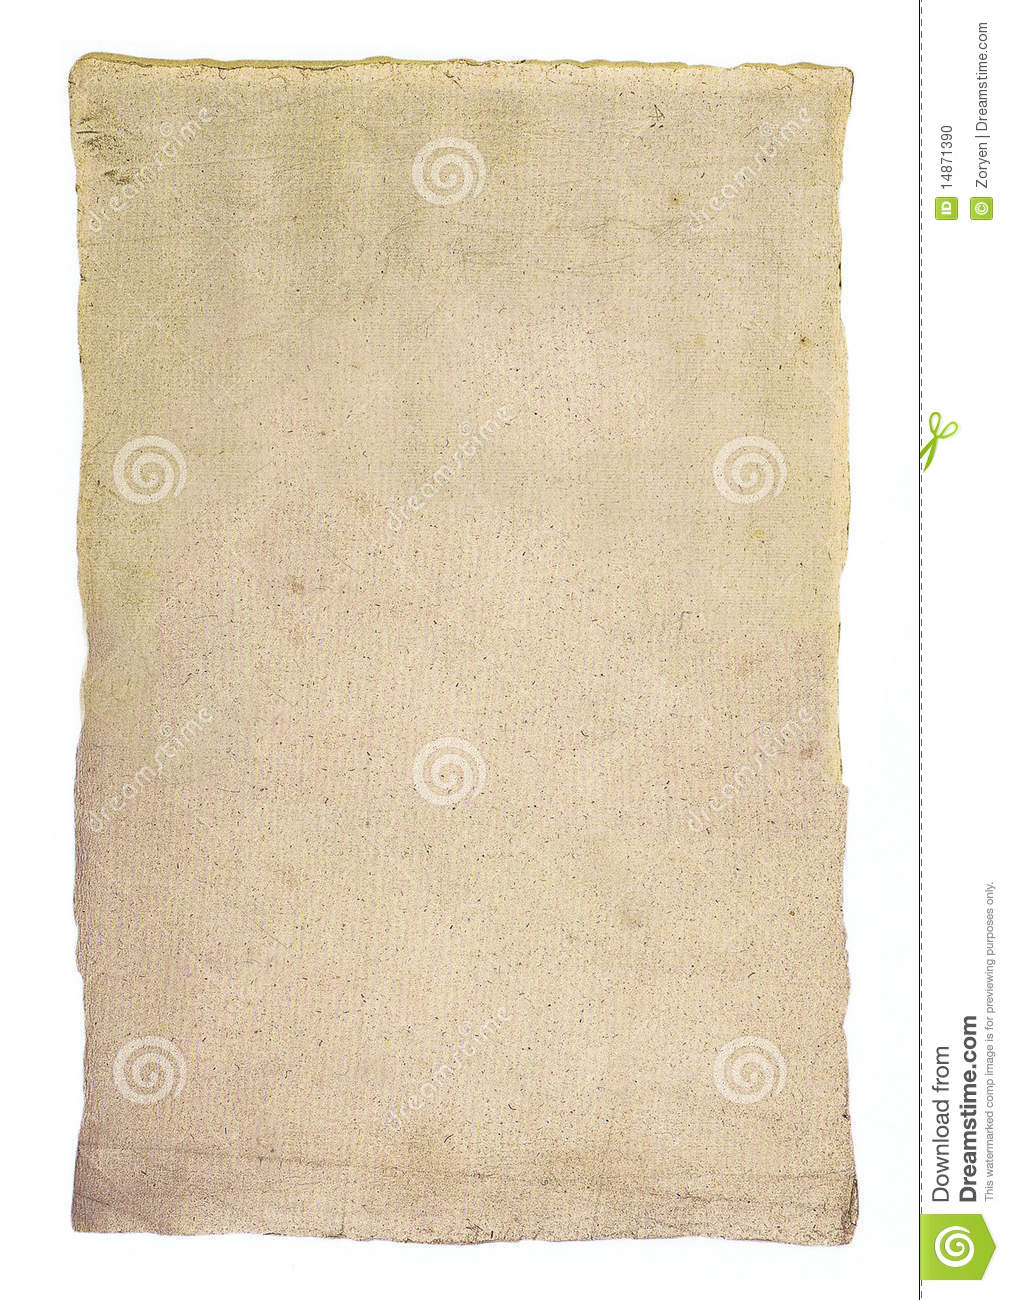 Textured sheet of old paper